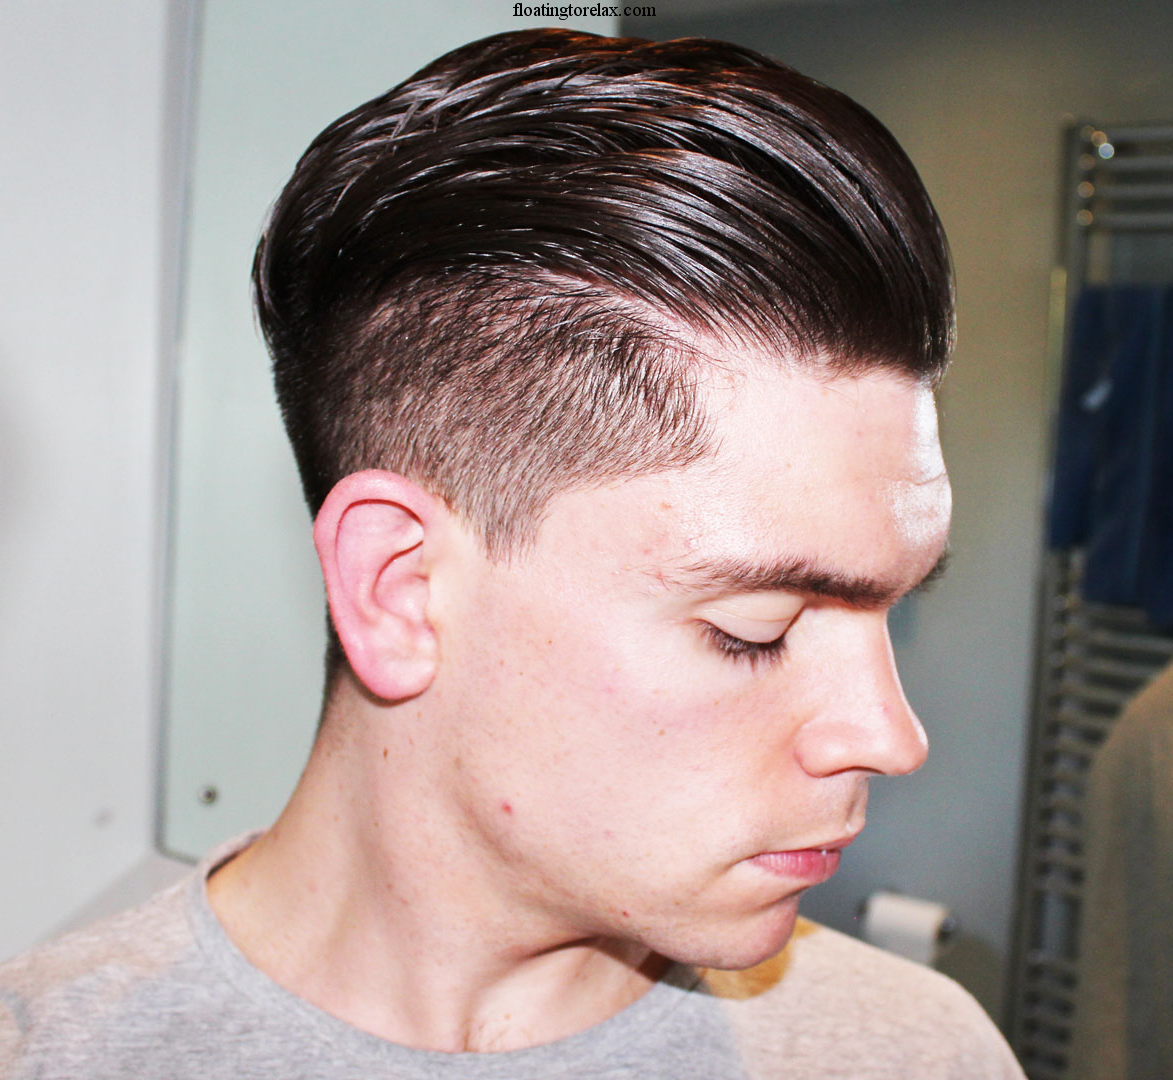 How To Do Pompadour Hairstyle For Men Http Floatingtorelax Com Undercut Hairstyles Mens Hairstyles Pompadour Men Haircut Styles